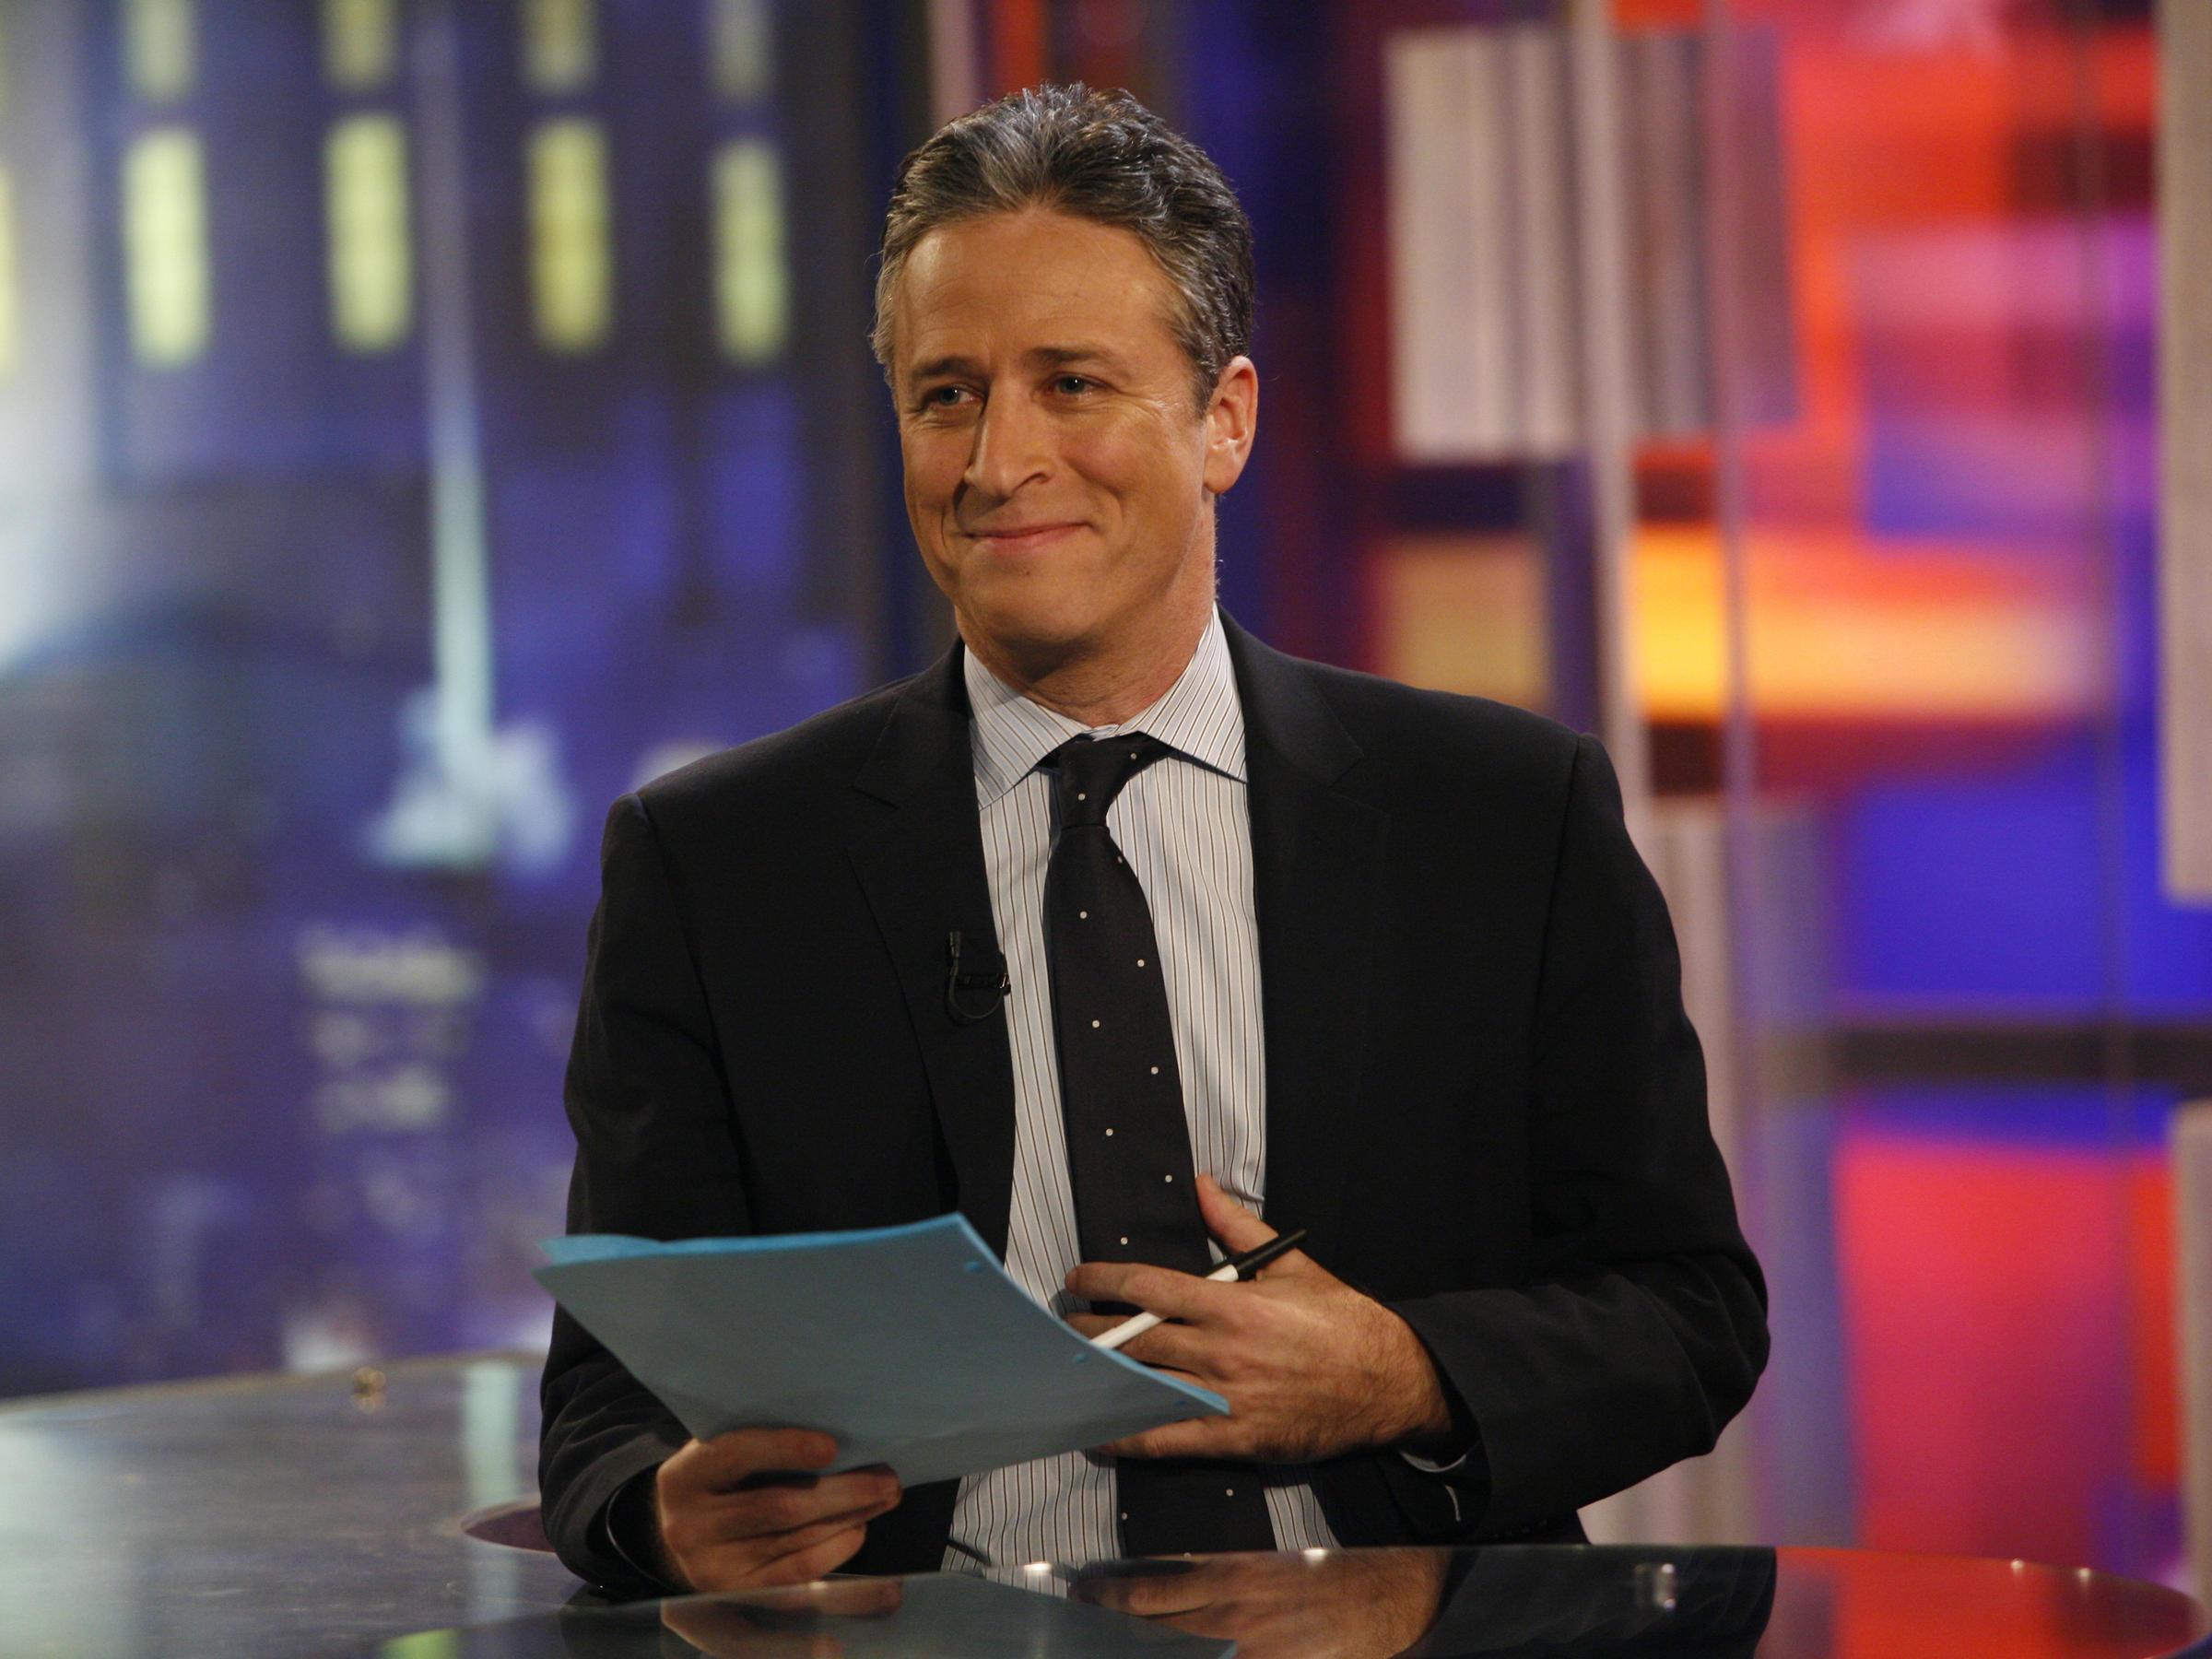 Stewart asshole comedy central